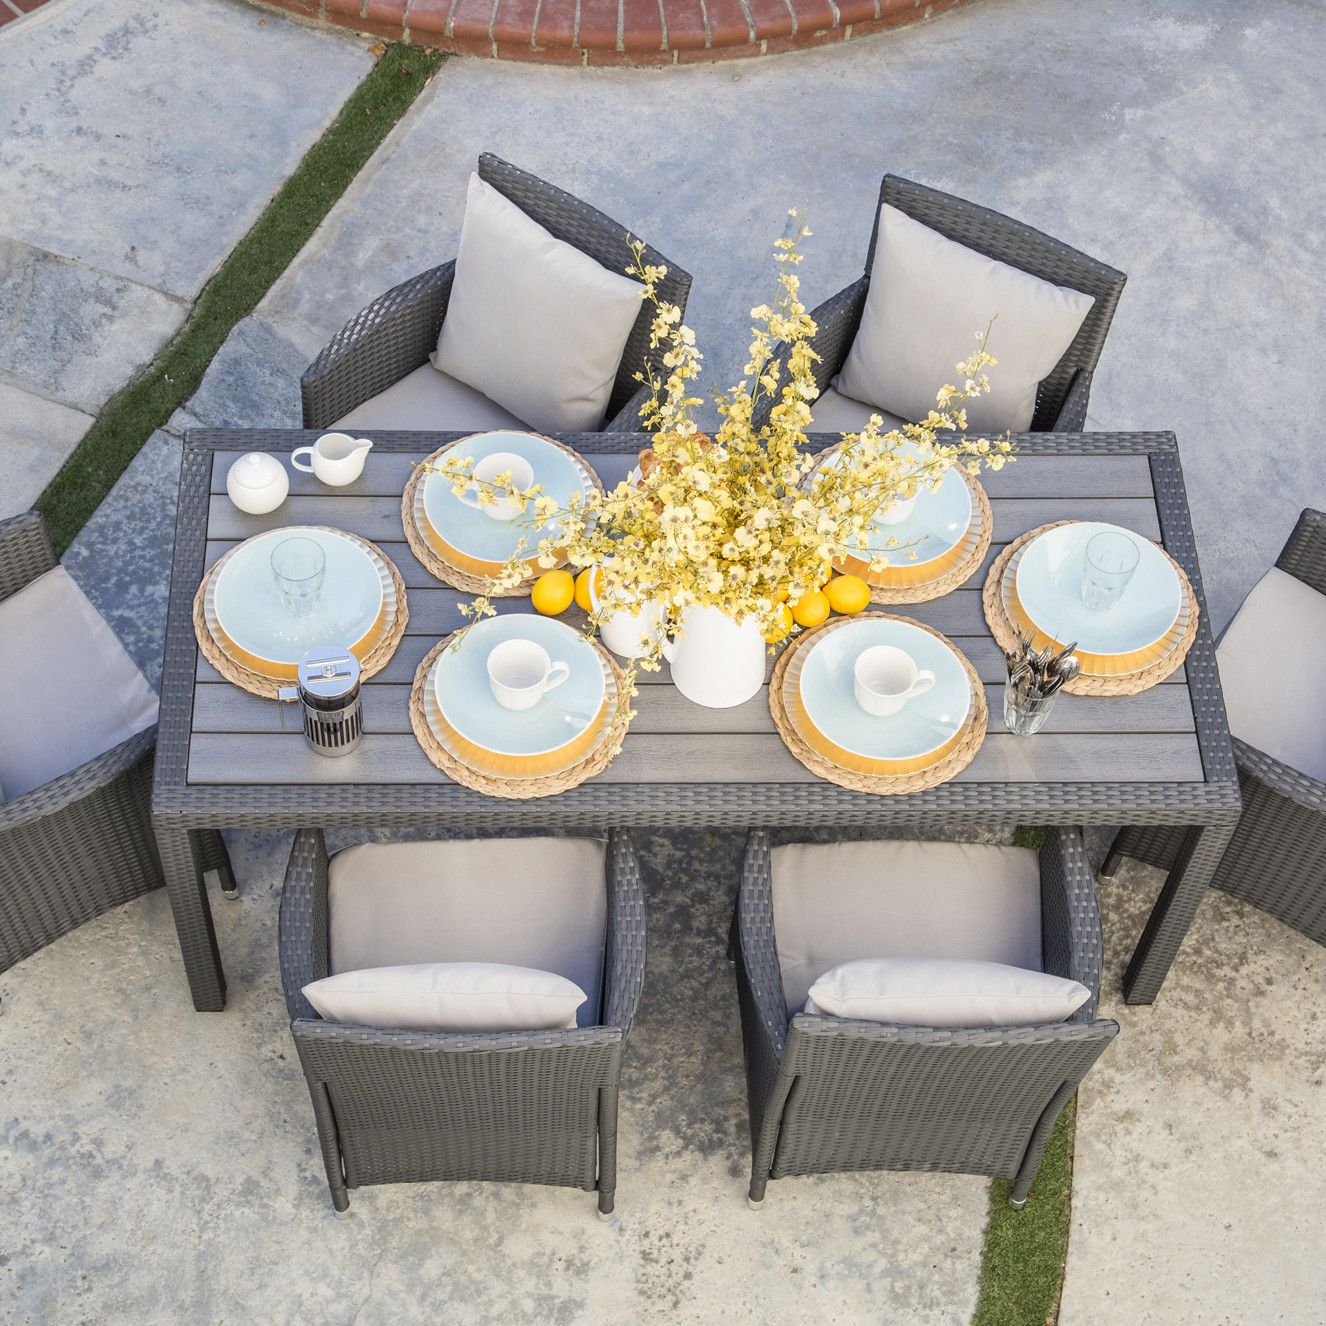 7-Piece Nathaniel Patio Dining Set in Grey | Joss & Main - Borowski 7 Piece Dining Set With Cushion Dining Sets, Grey And Patio